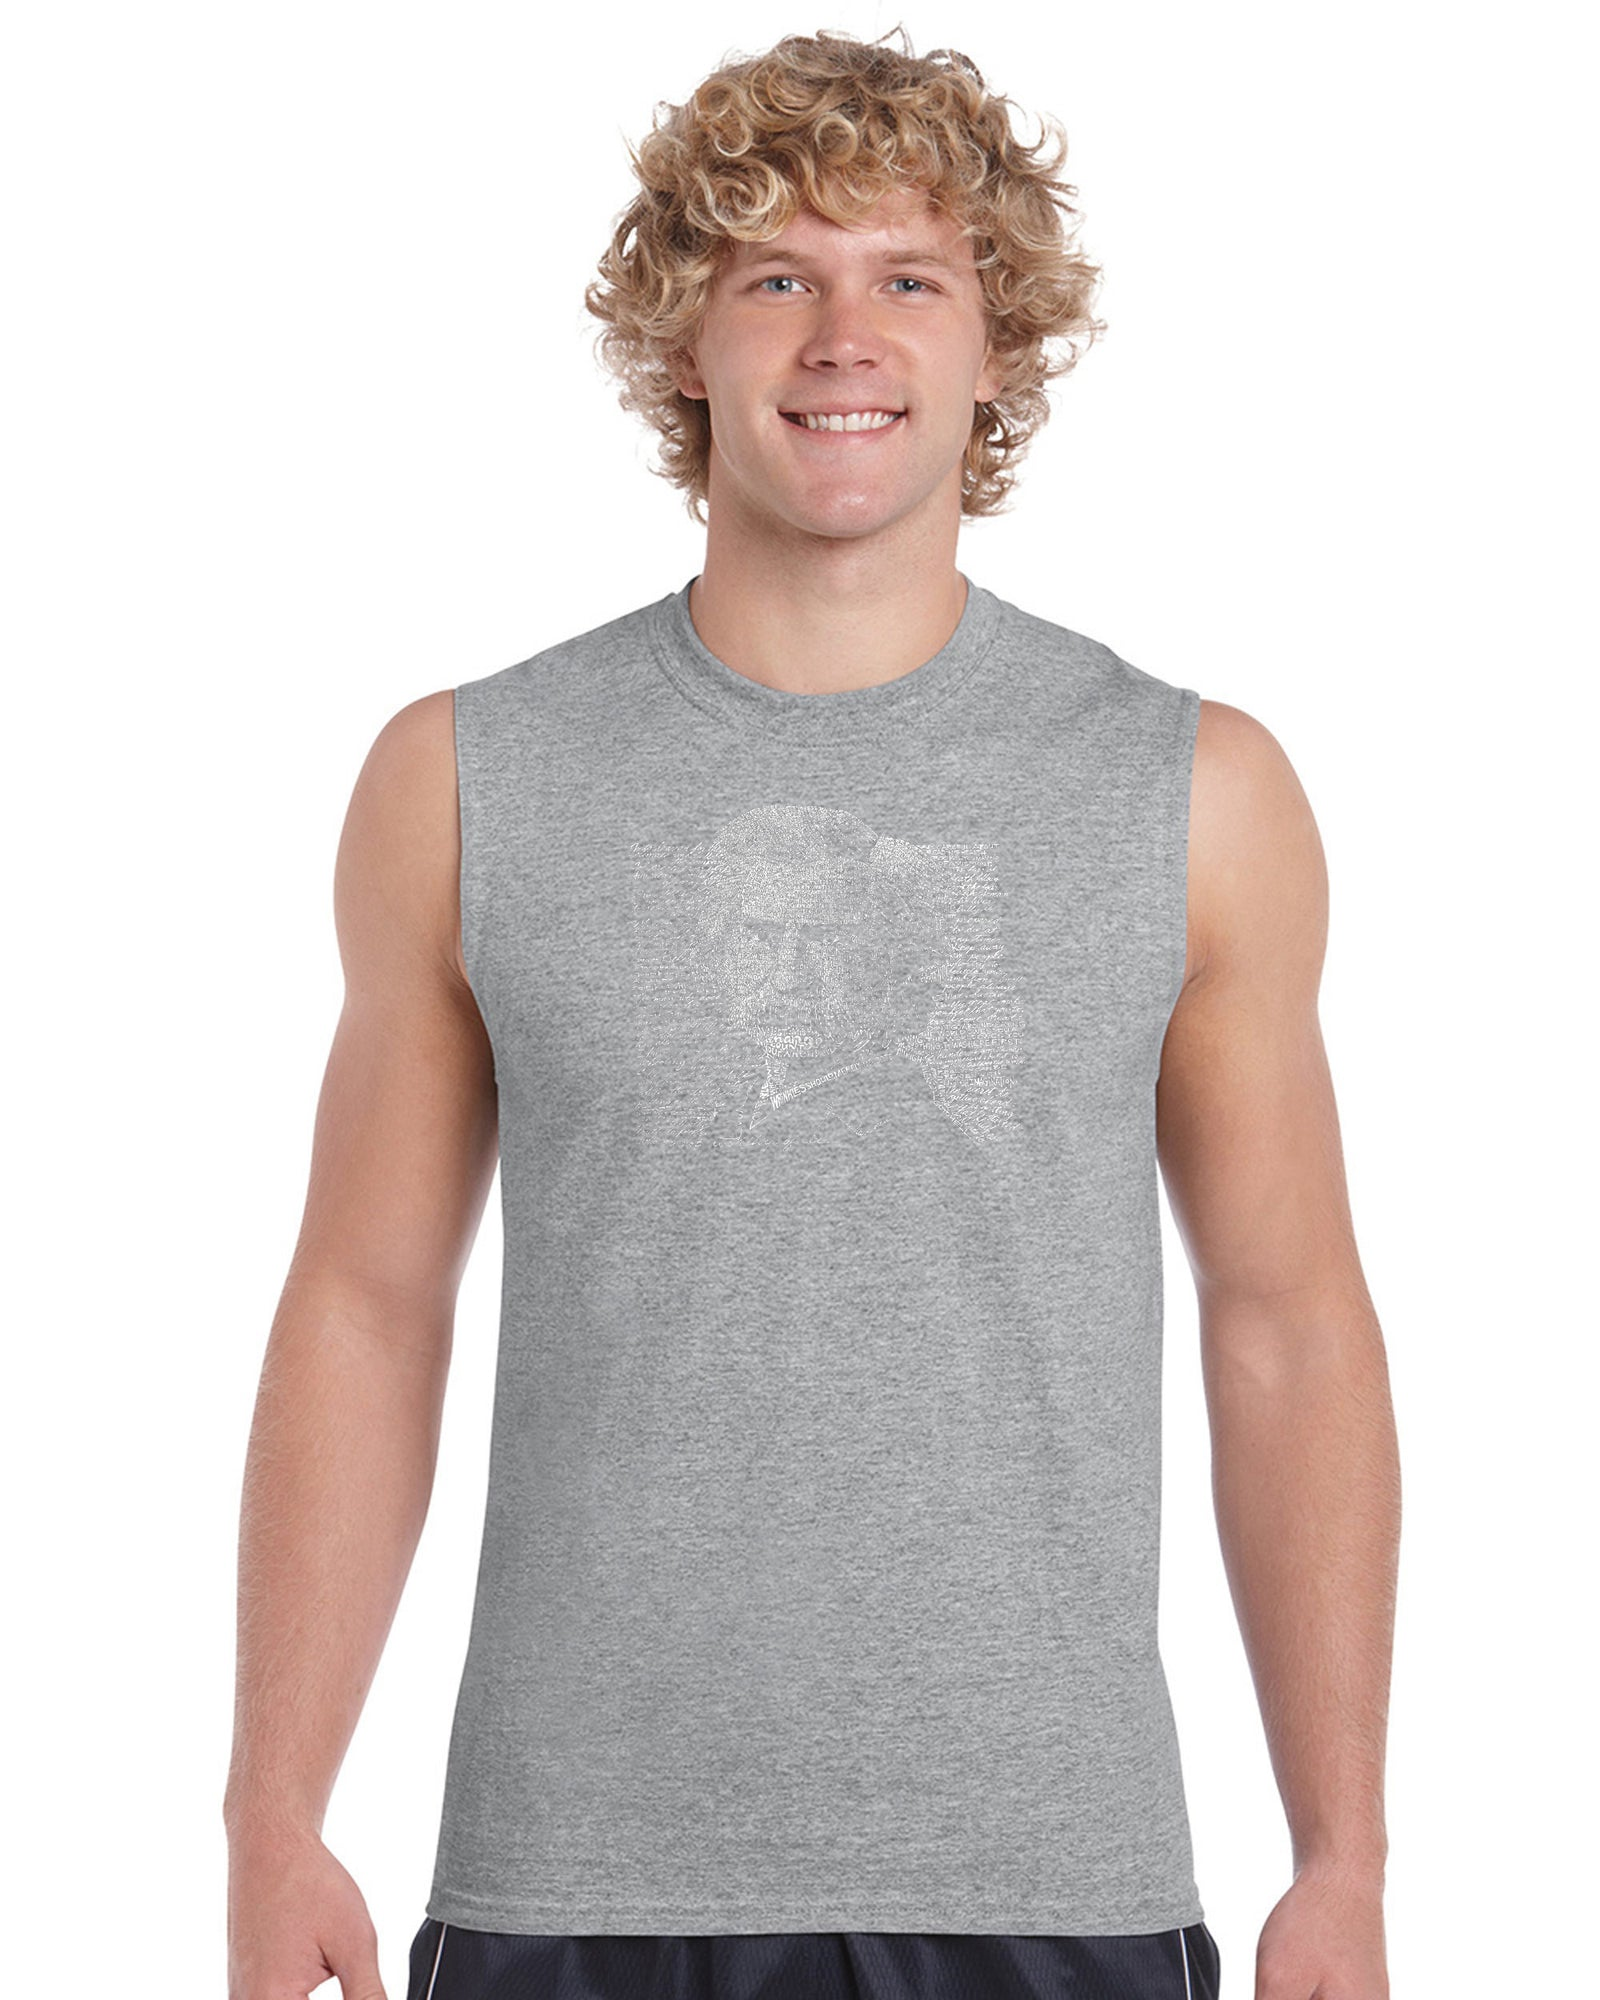 Men's Sleeveless T-shirt - Mark Twain